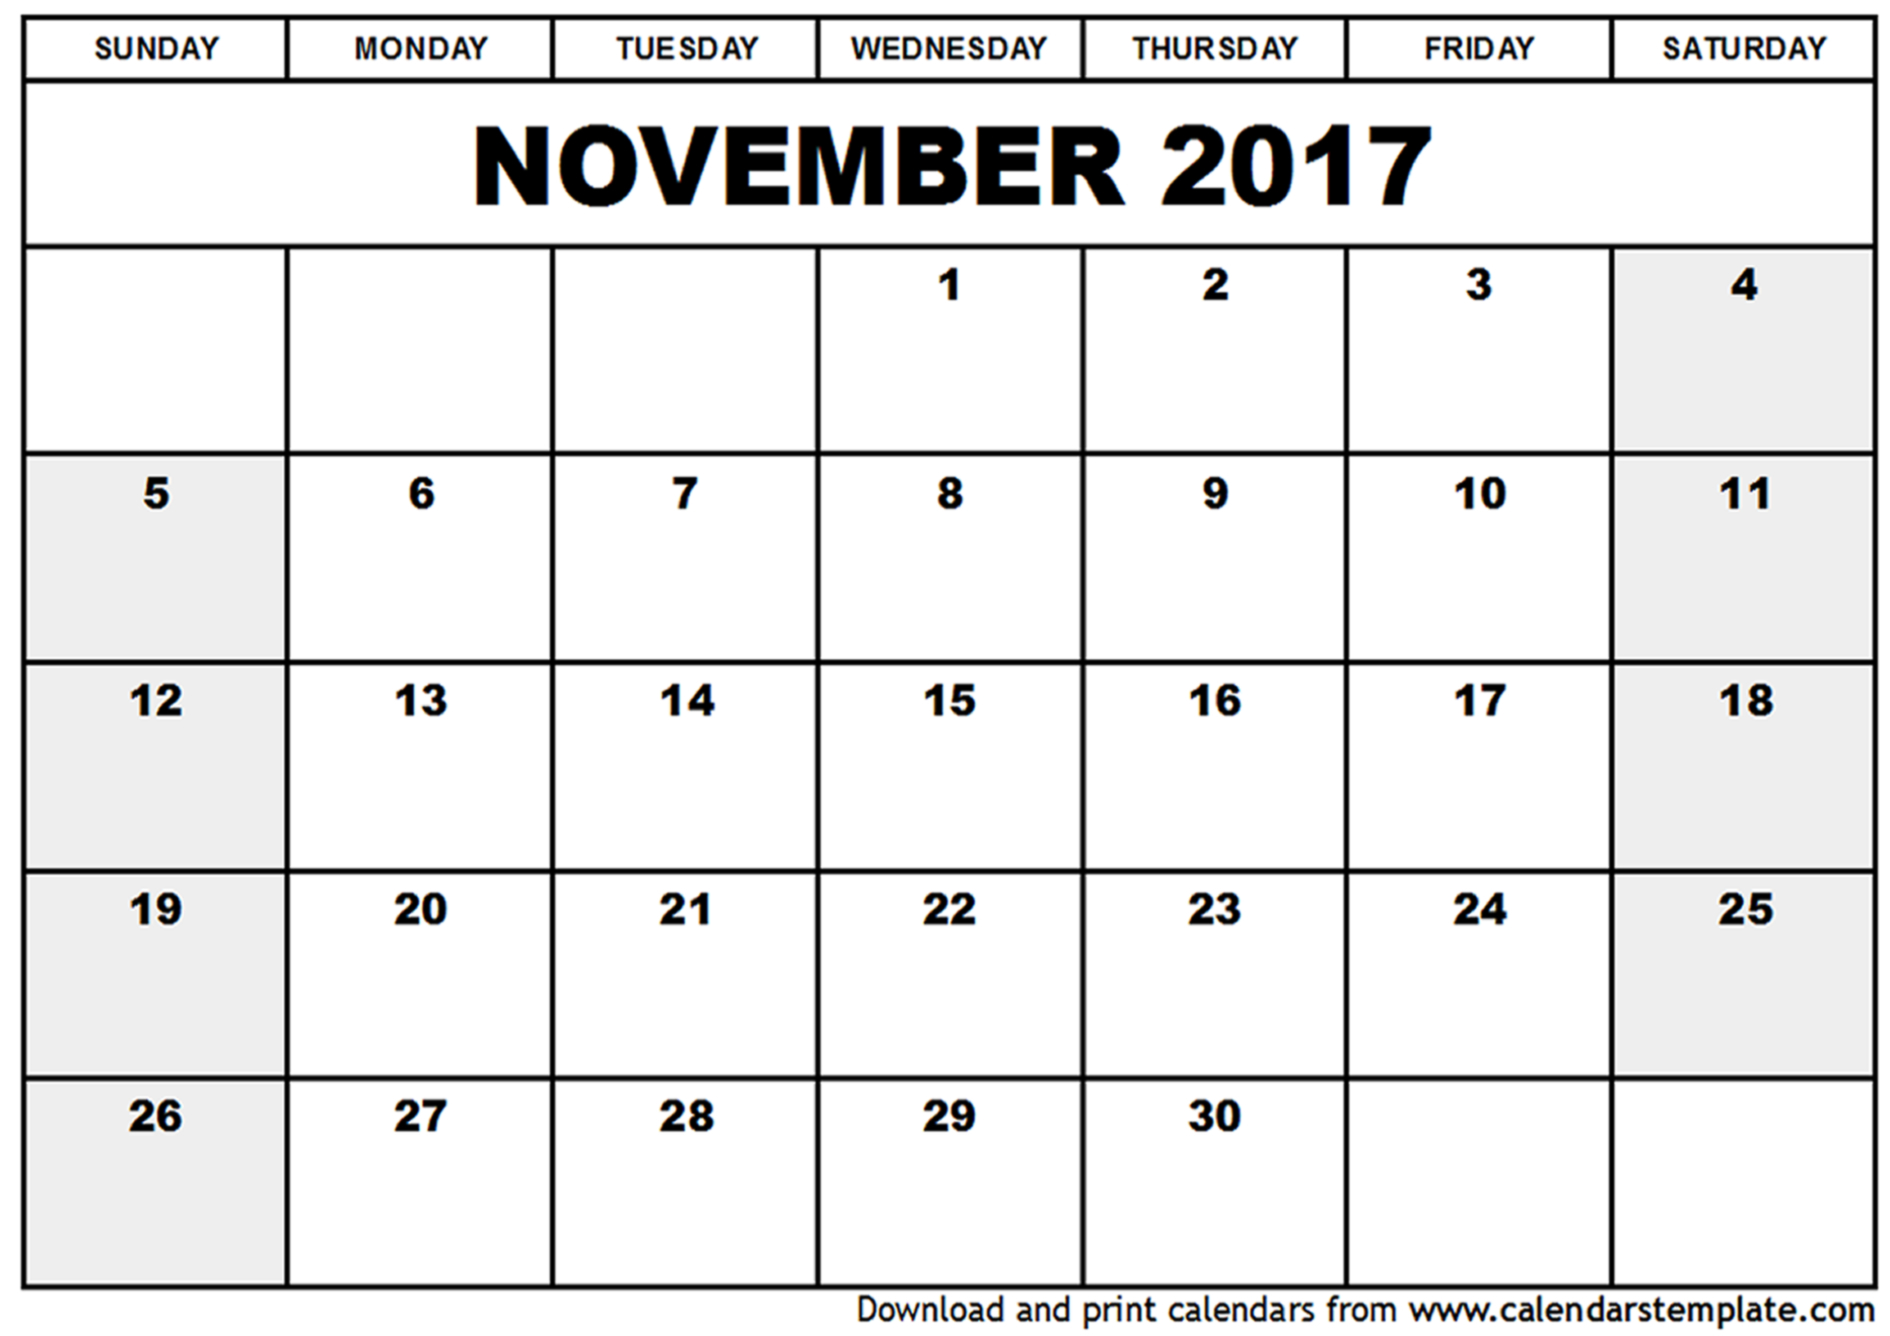 November 2017 Calendar Cute | weekly calendar template